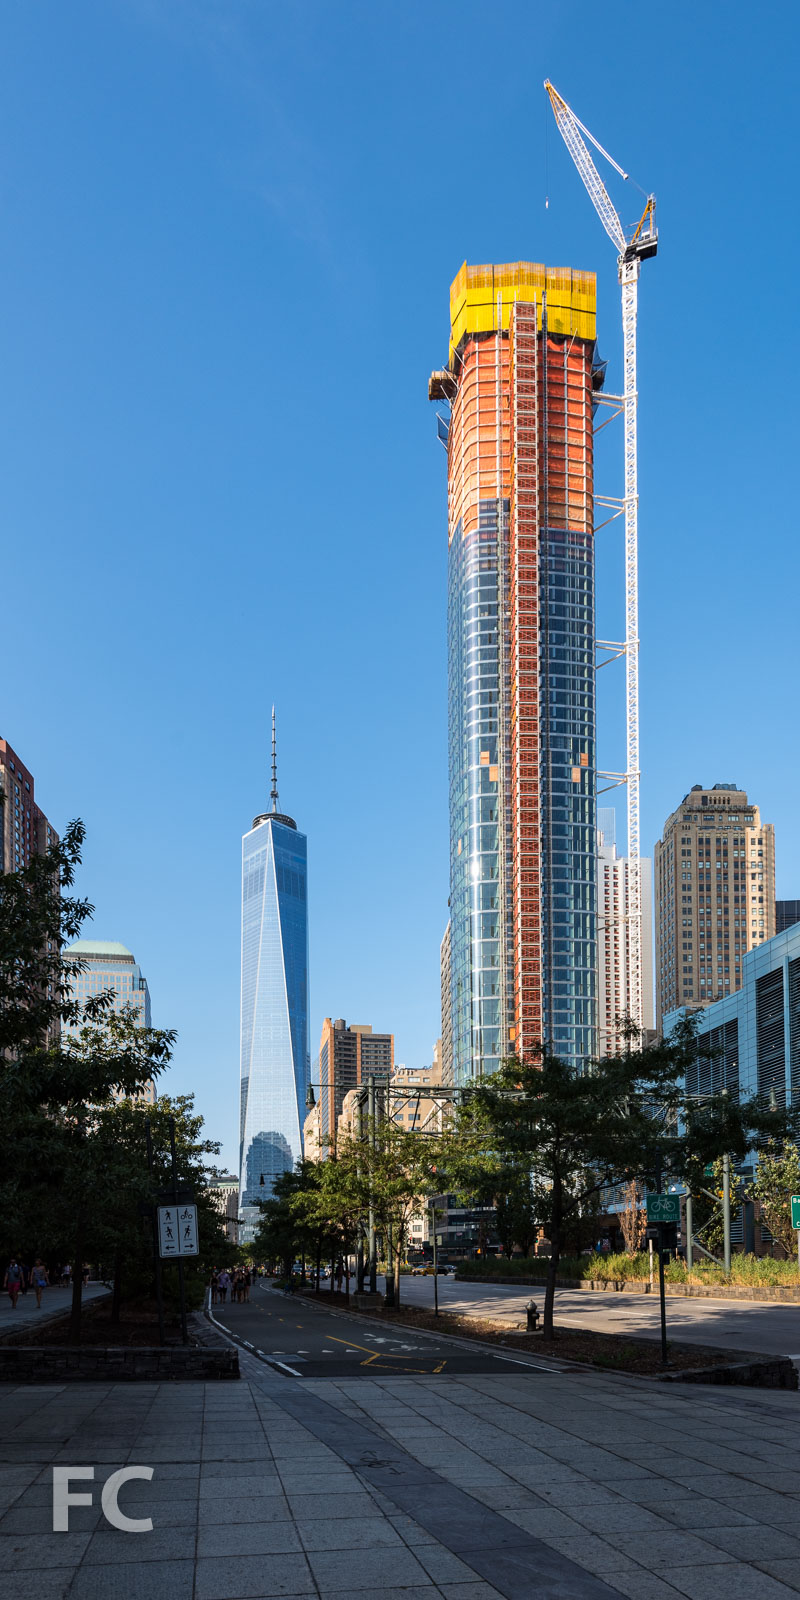 Looking north from the Hudson River Greenway towards 50 West (center) and One World Trade Center (left).